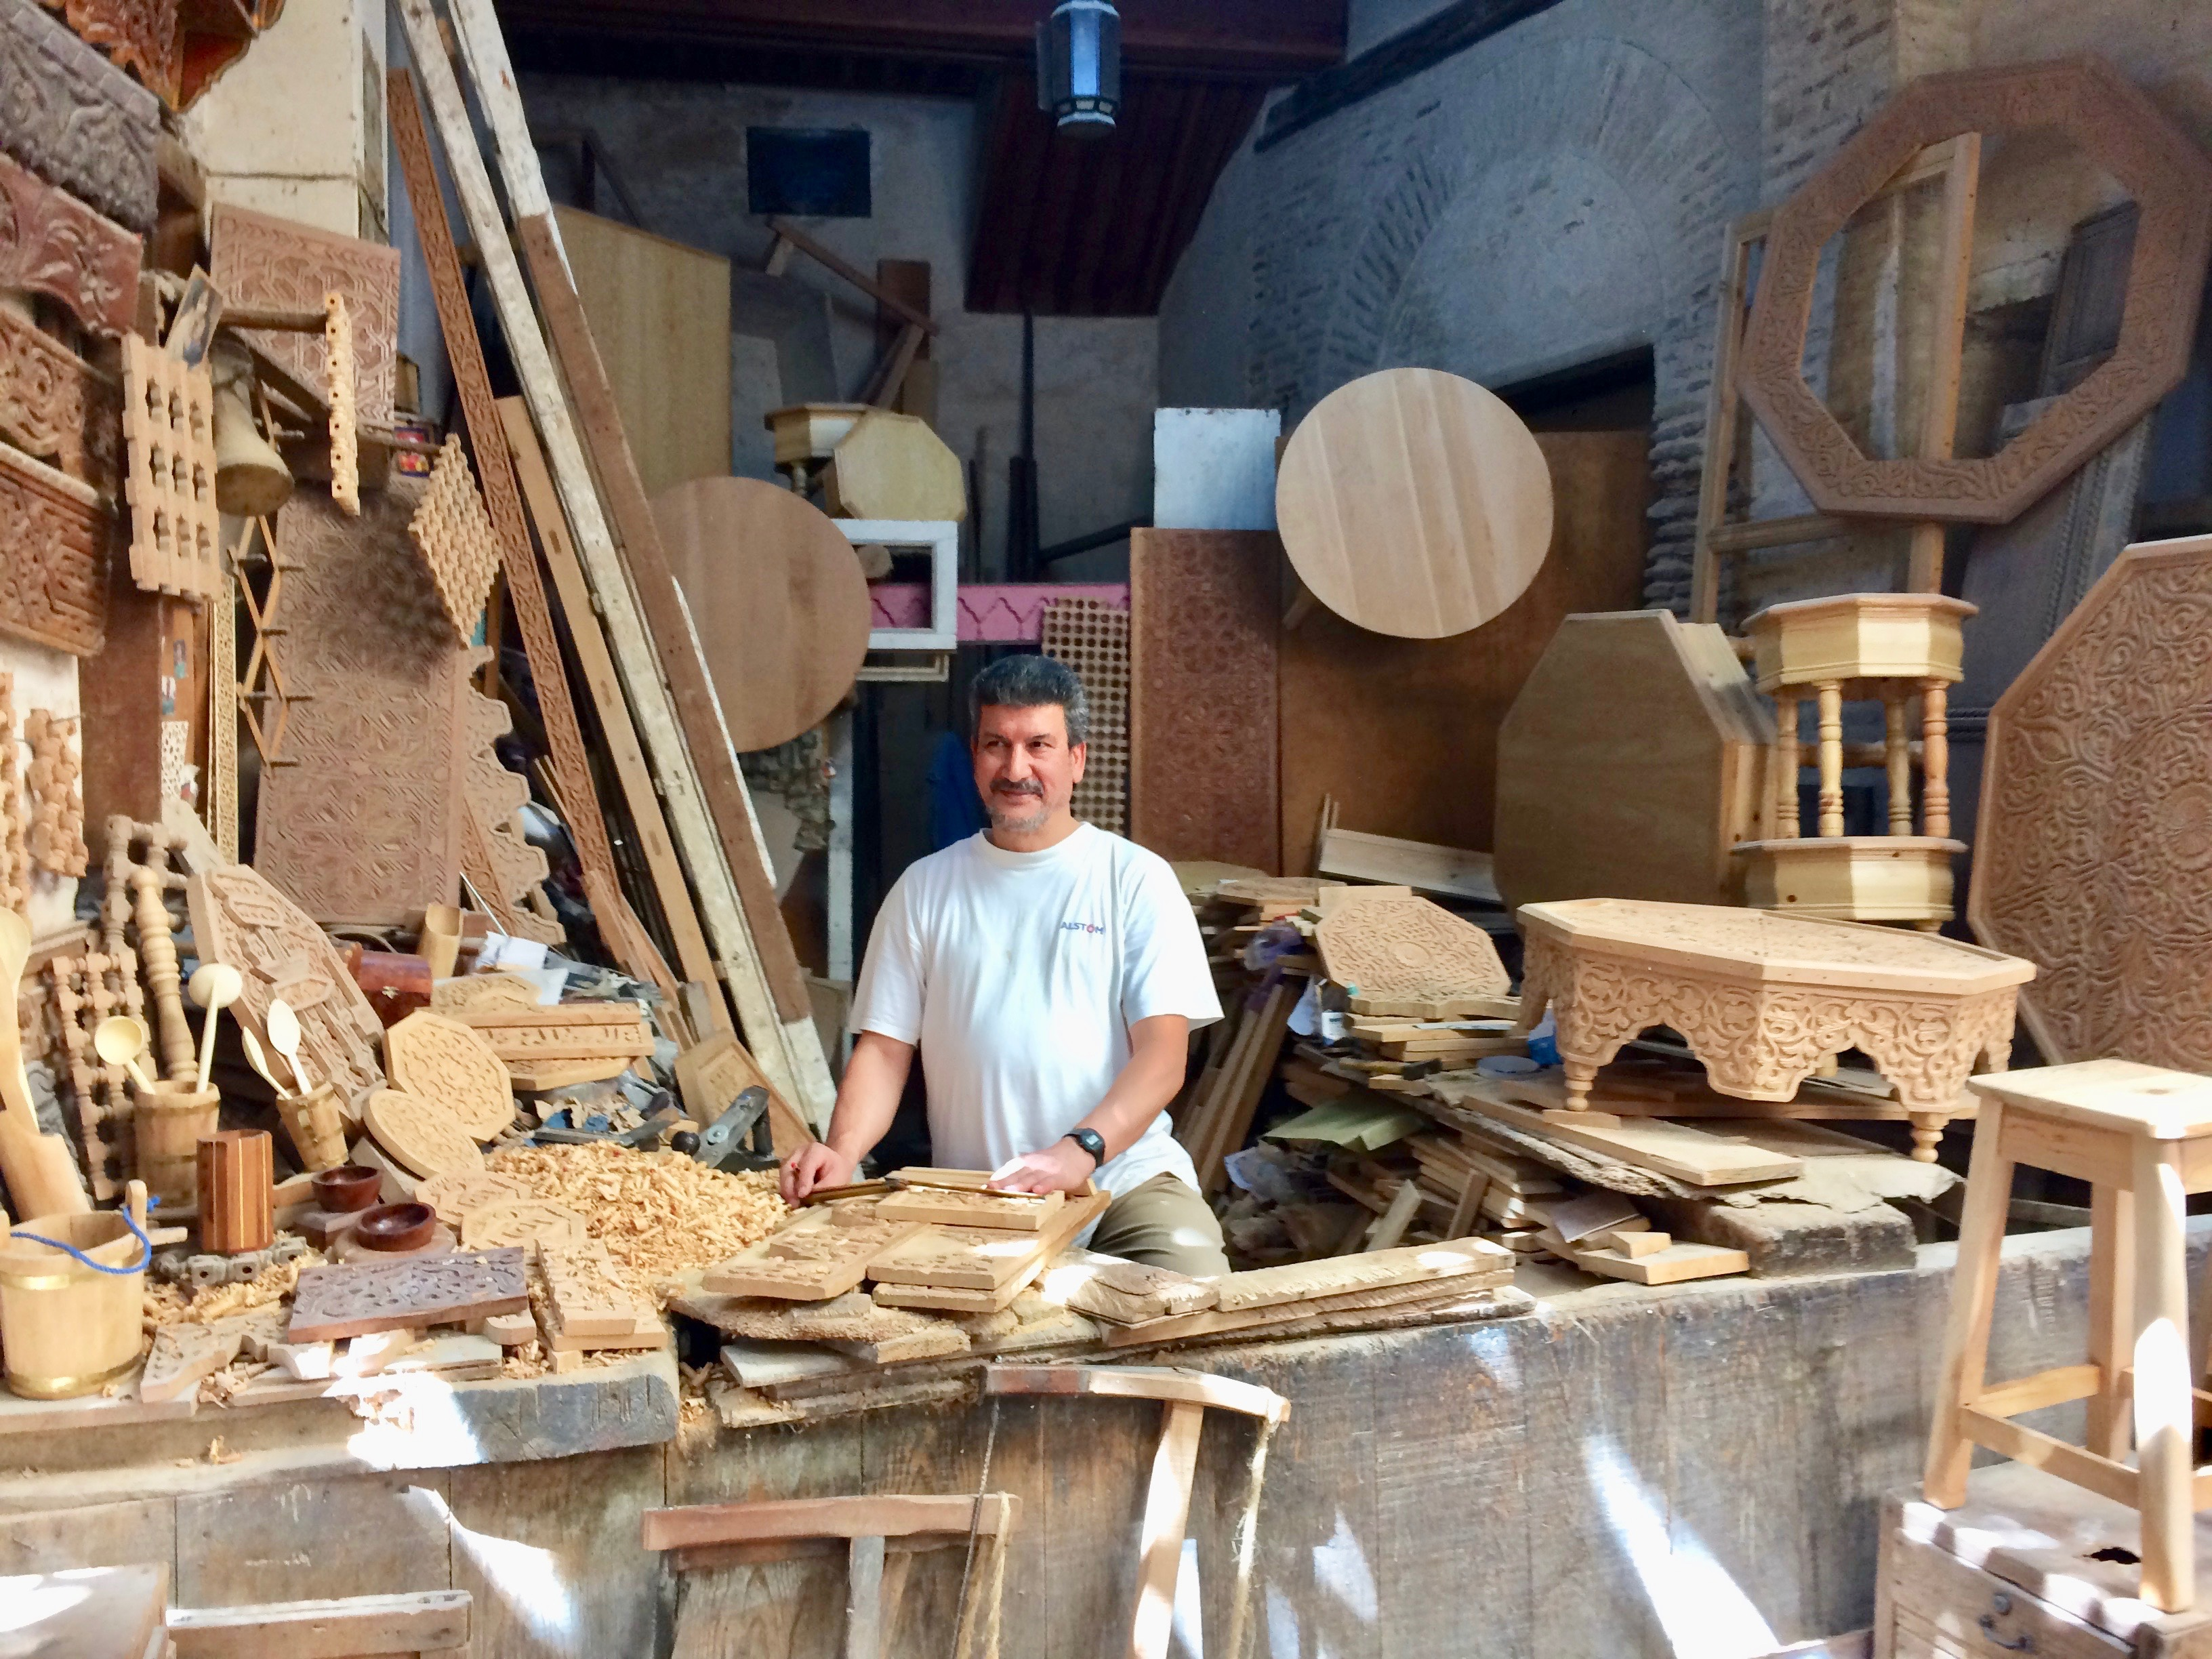 Woodworker at his craft